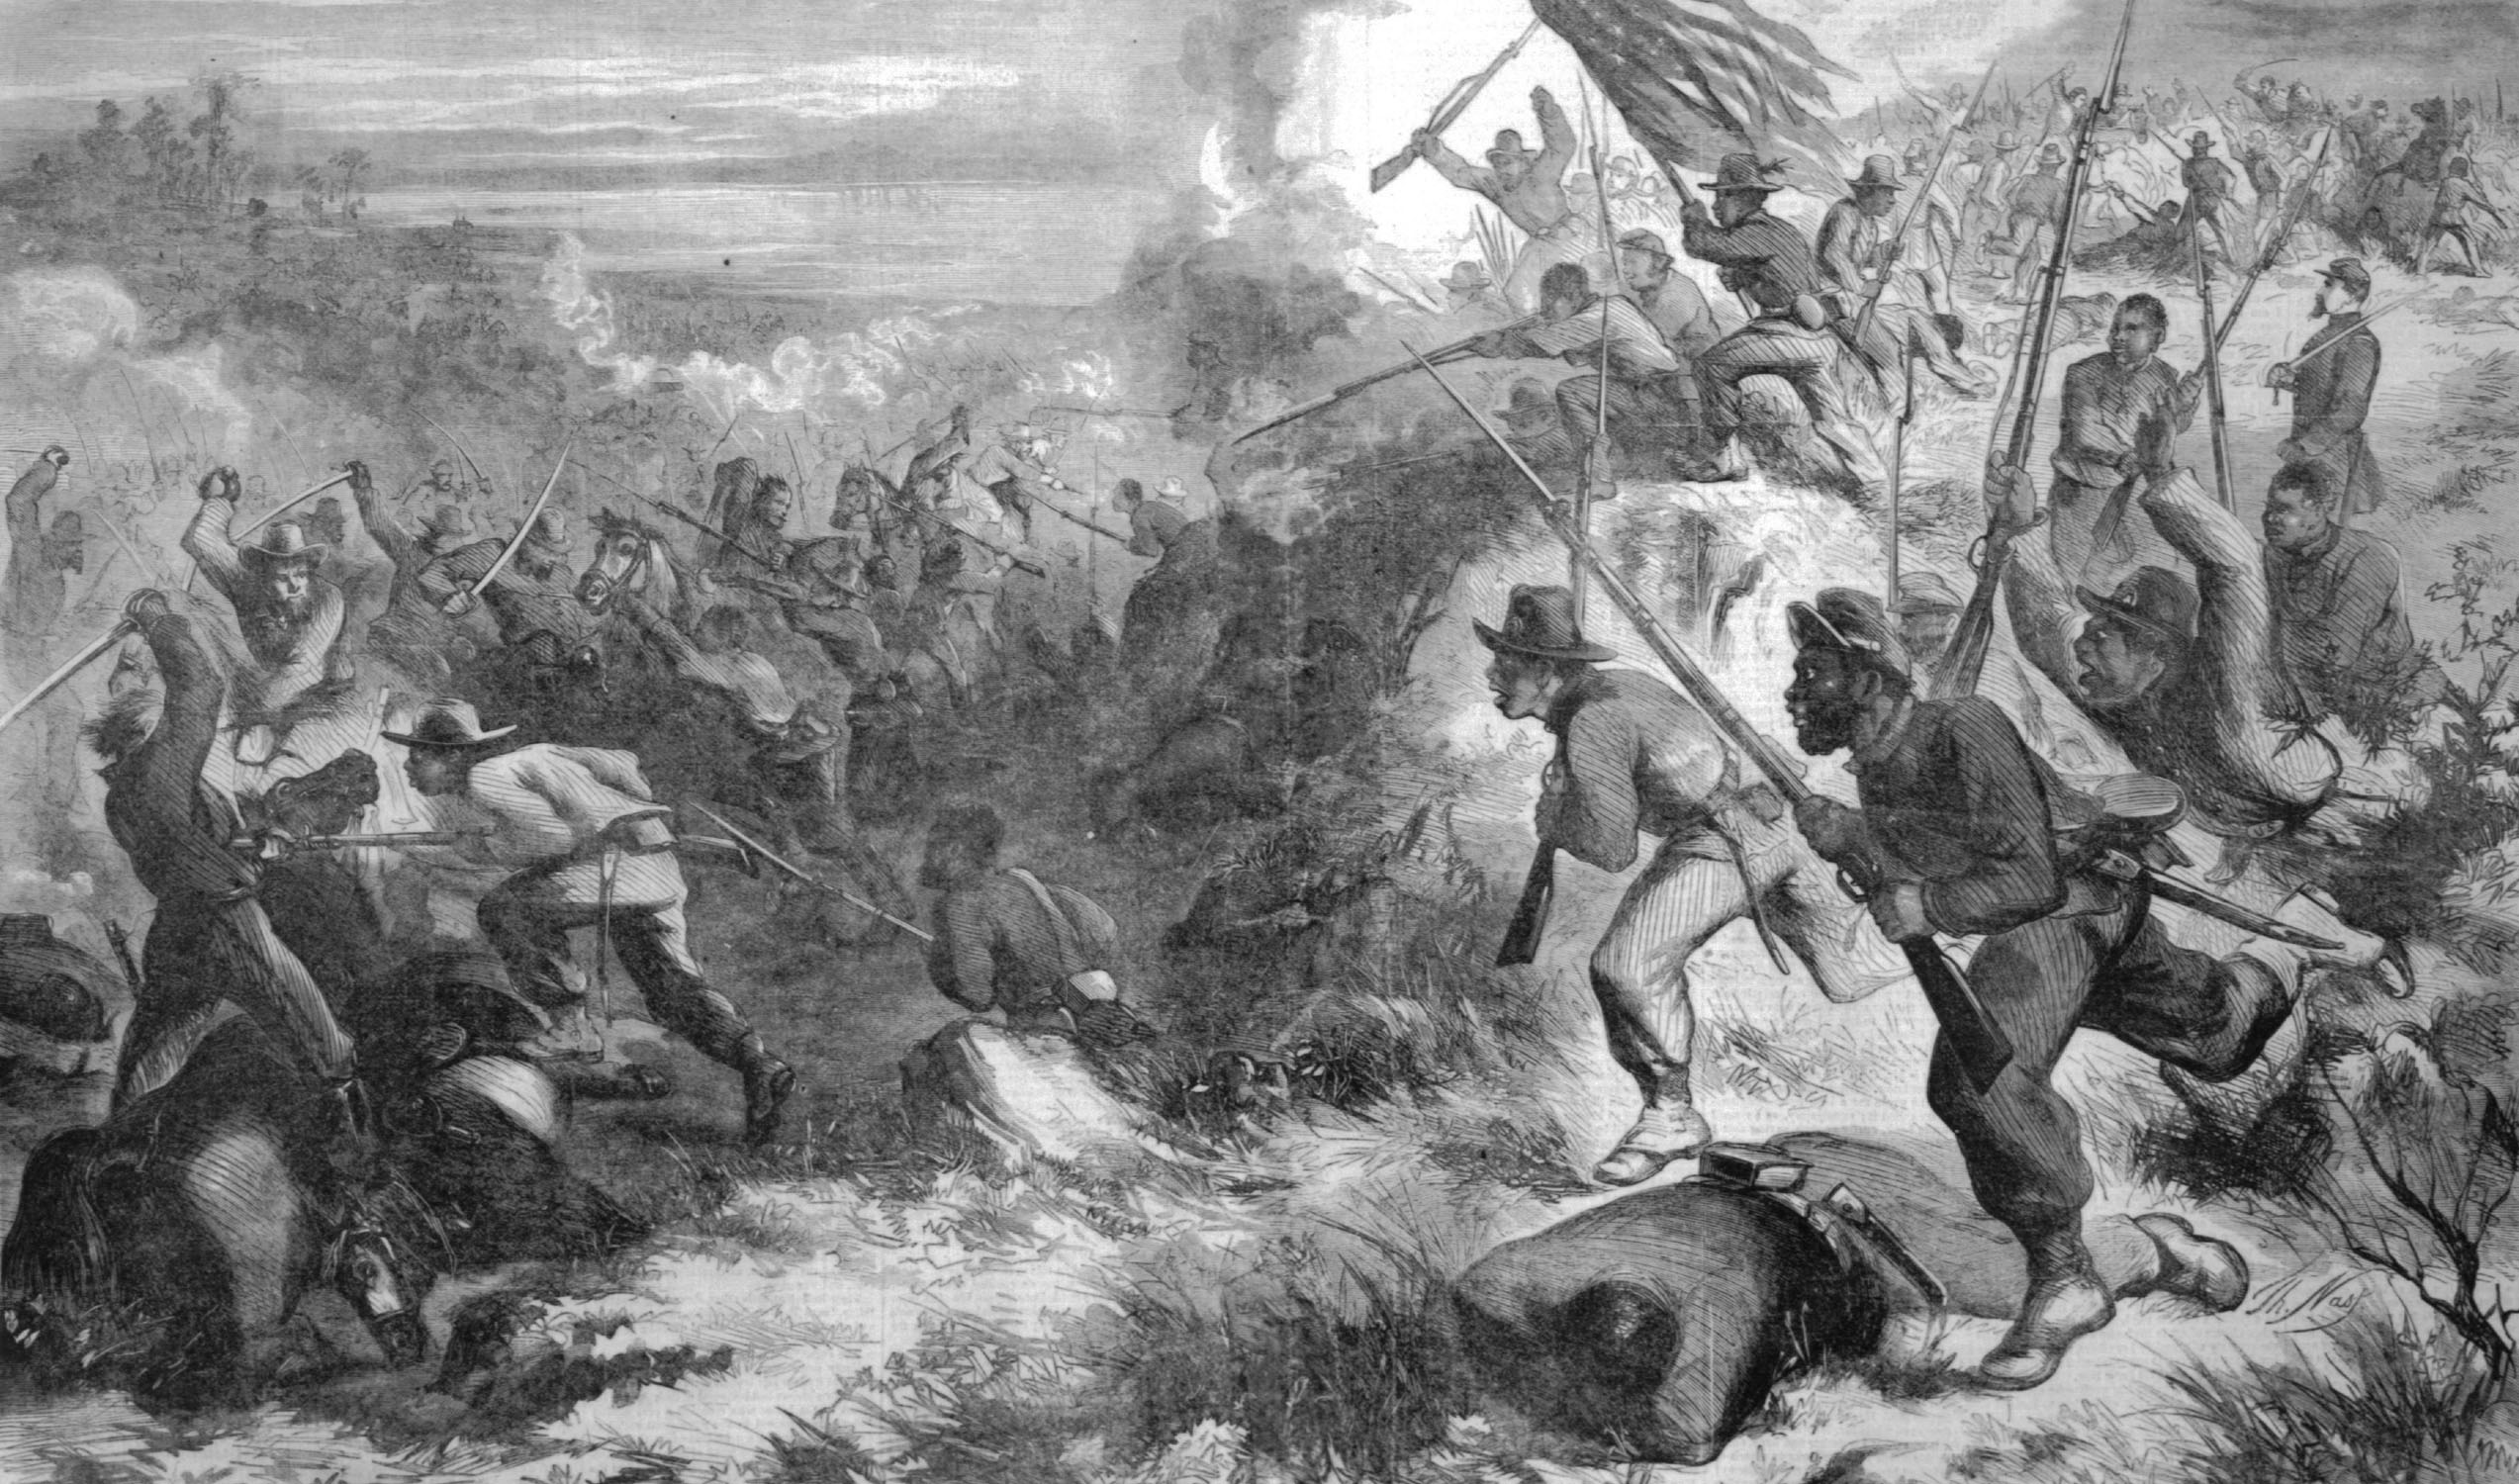 African American soldiers fighting at Island Mound